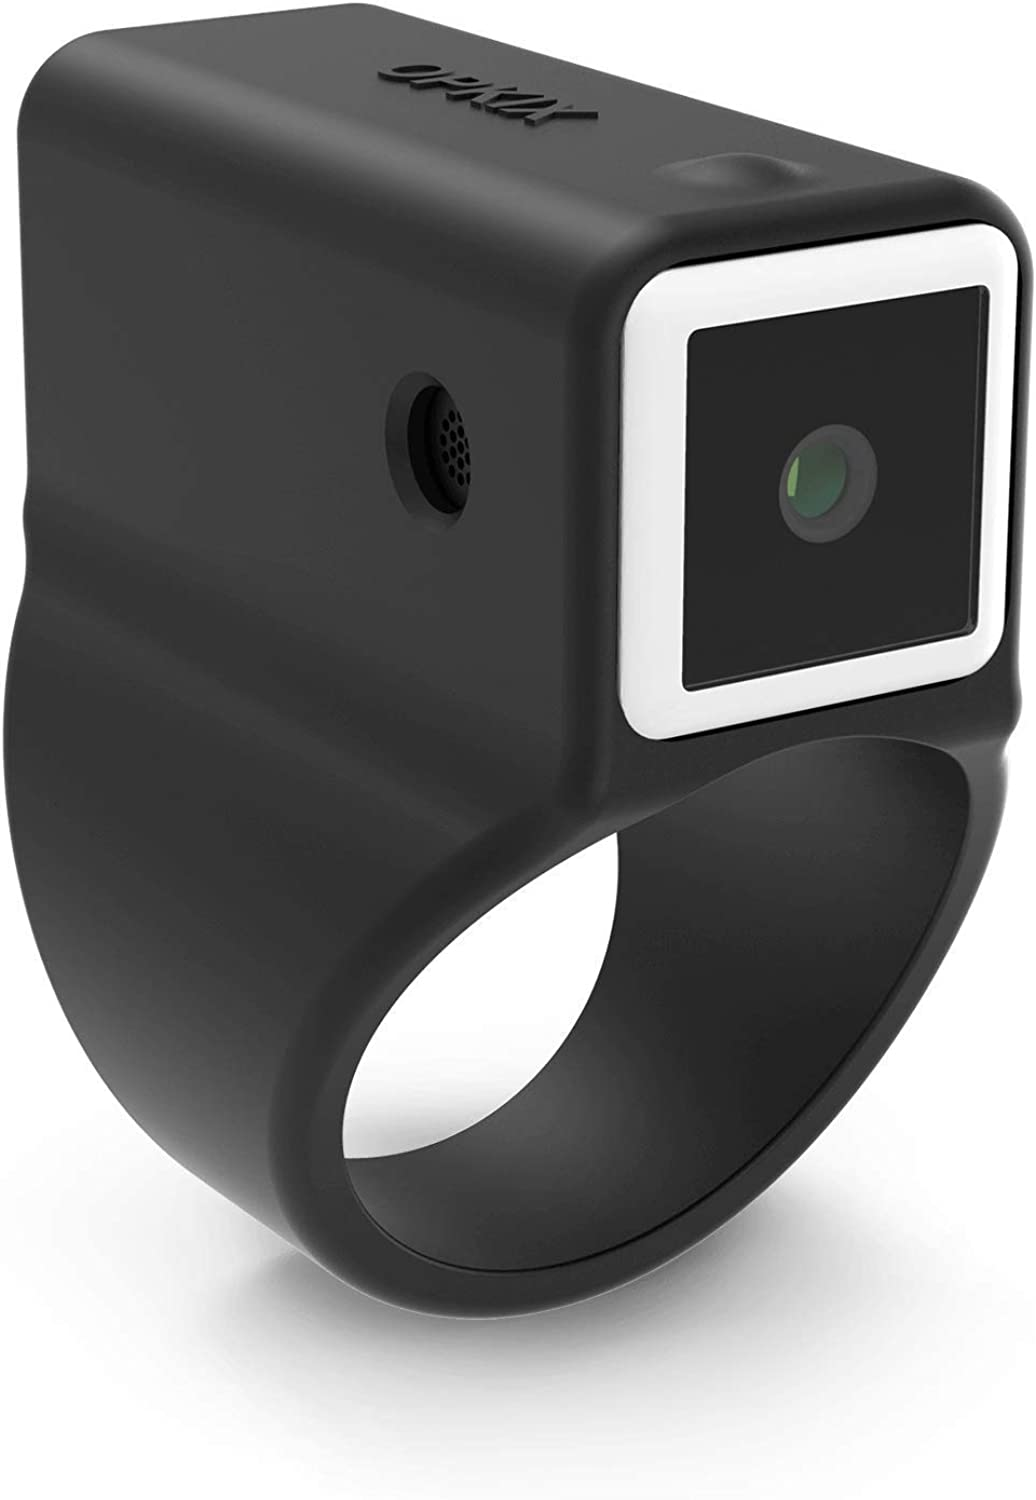 OPKIX Ring Very popular - Wearable Mount Fresno Mall for The One Kee Camera System